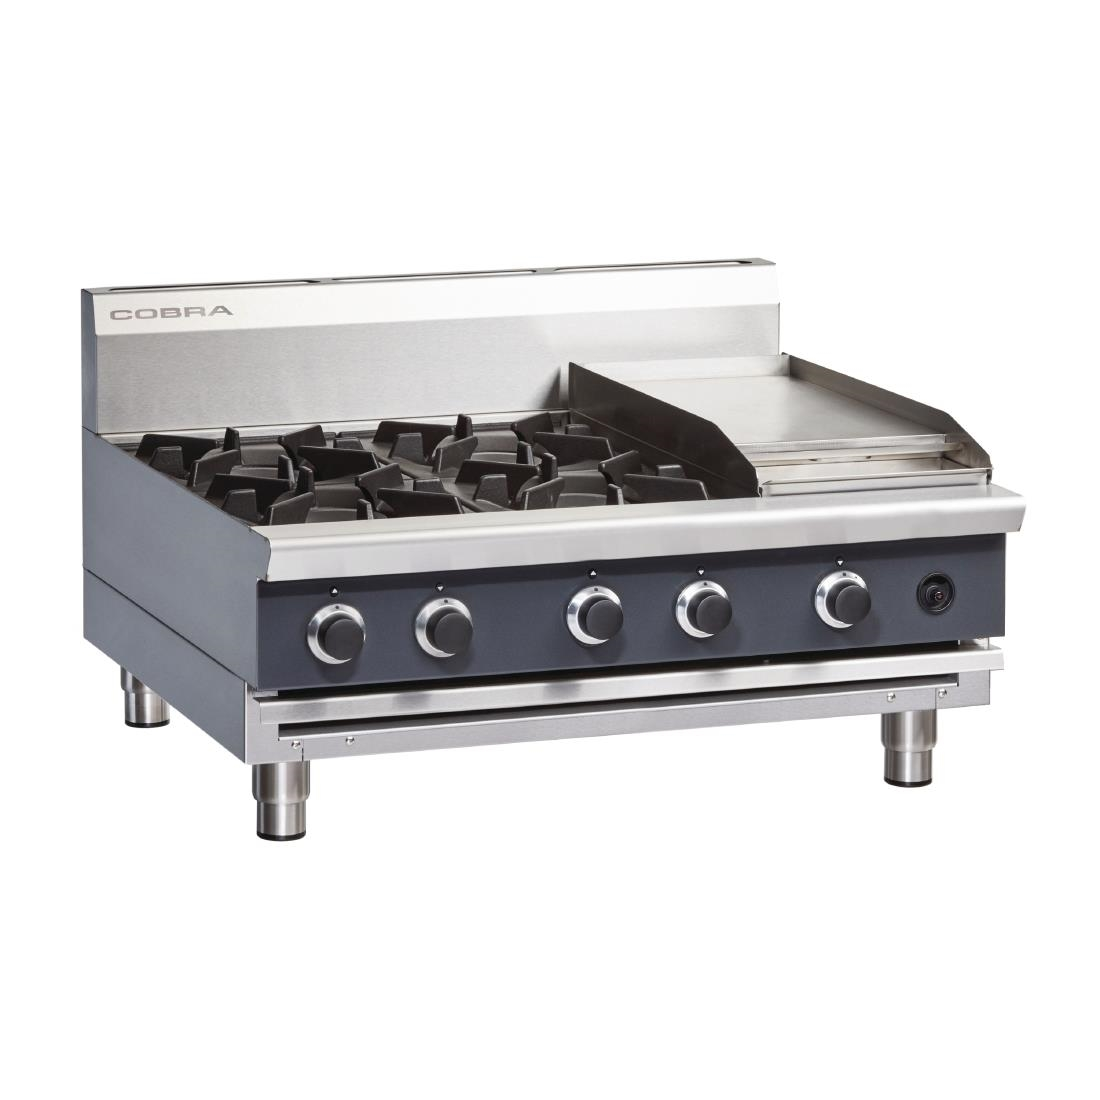 Image of Cobra Countertop LPG Hob with Griddle C9C-B